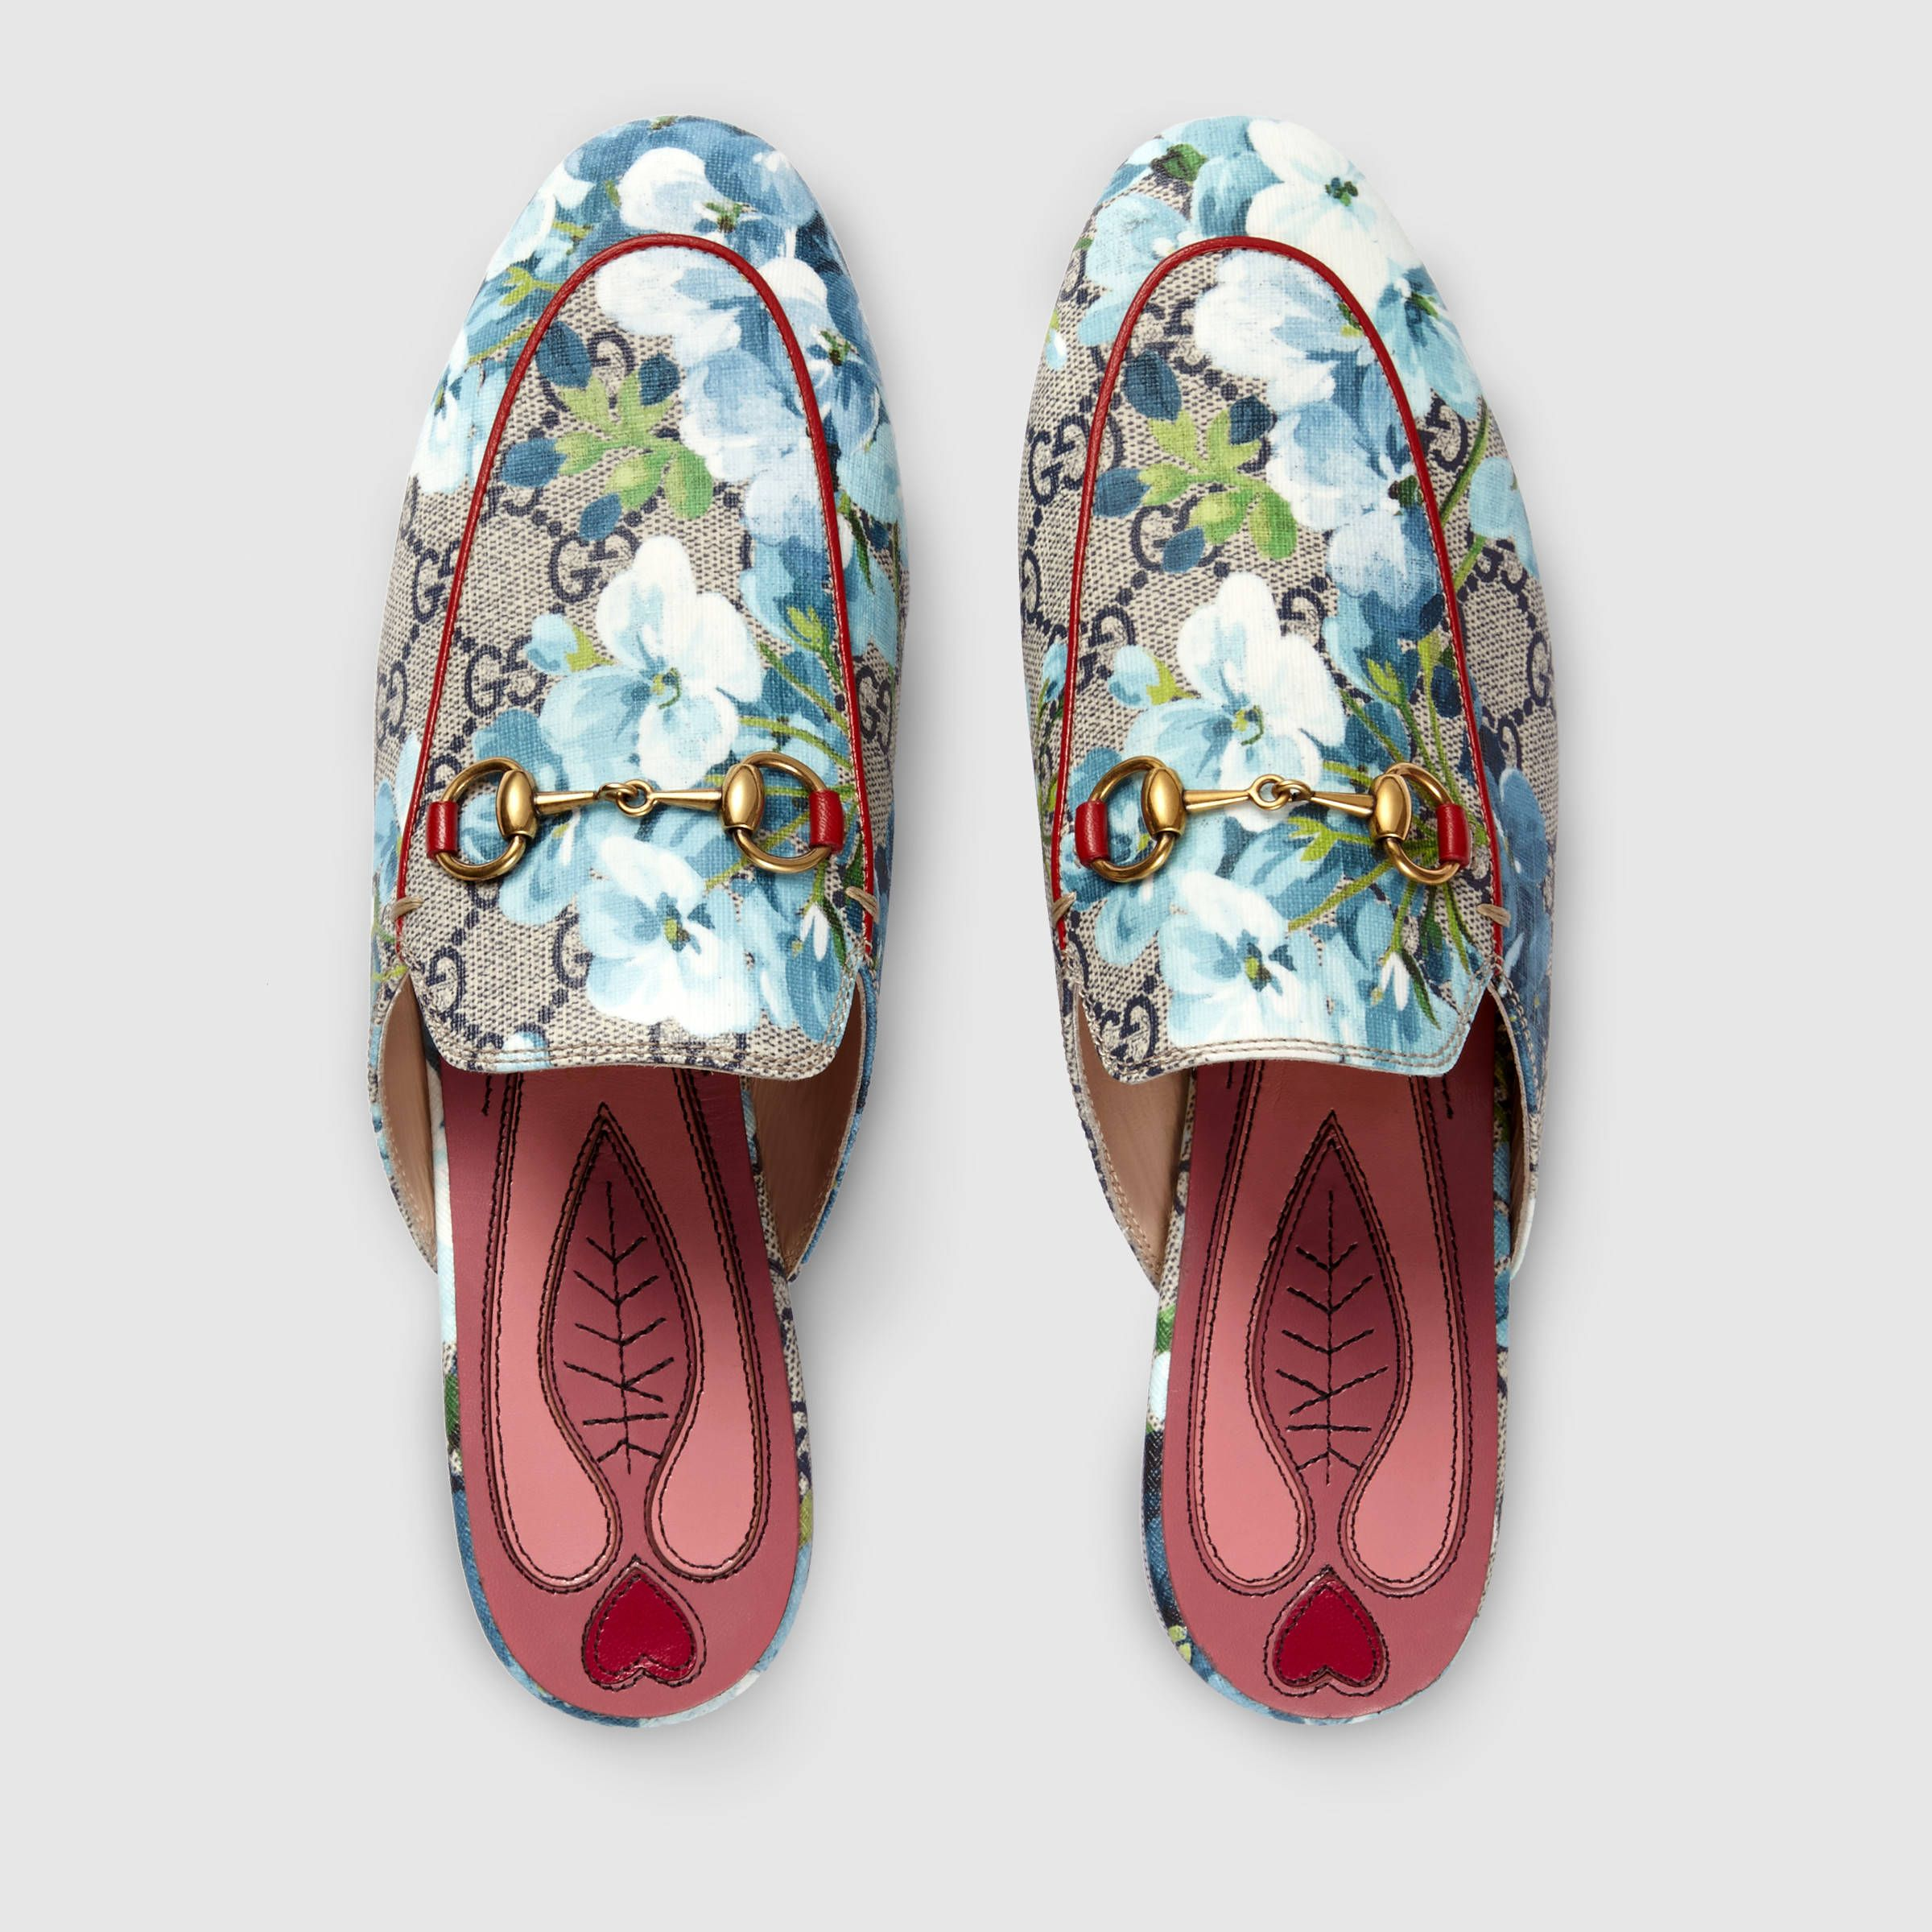 3e6c161242f Gucci  Princetown GG Blooms slipper in Pink Blooms Print